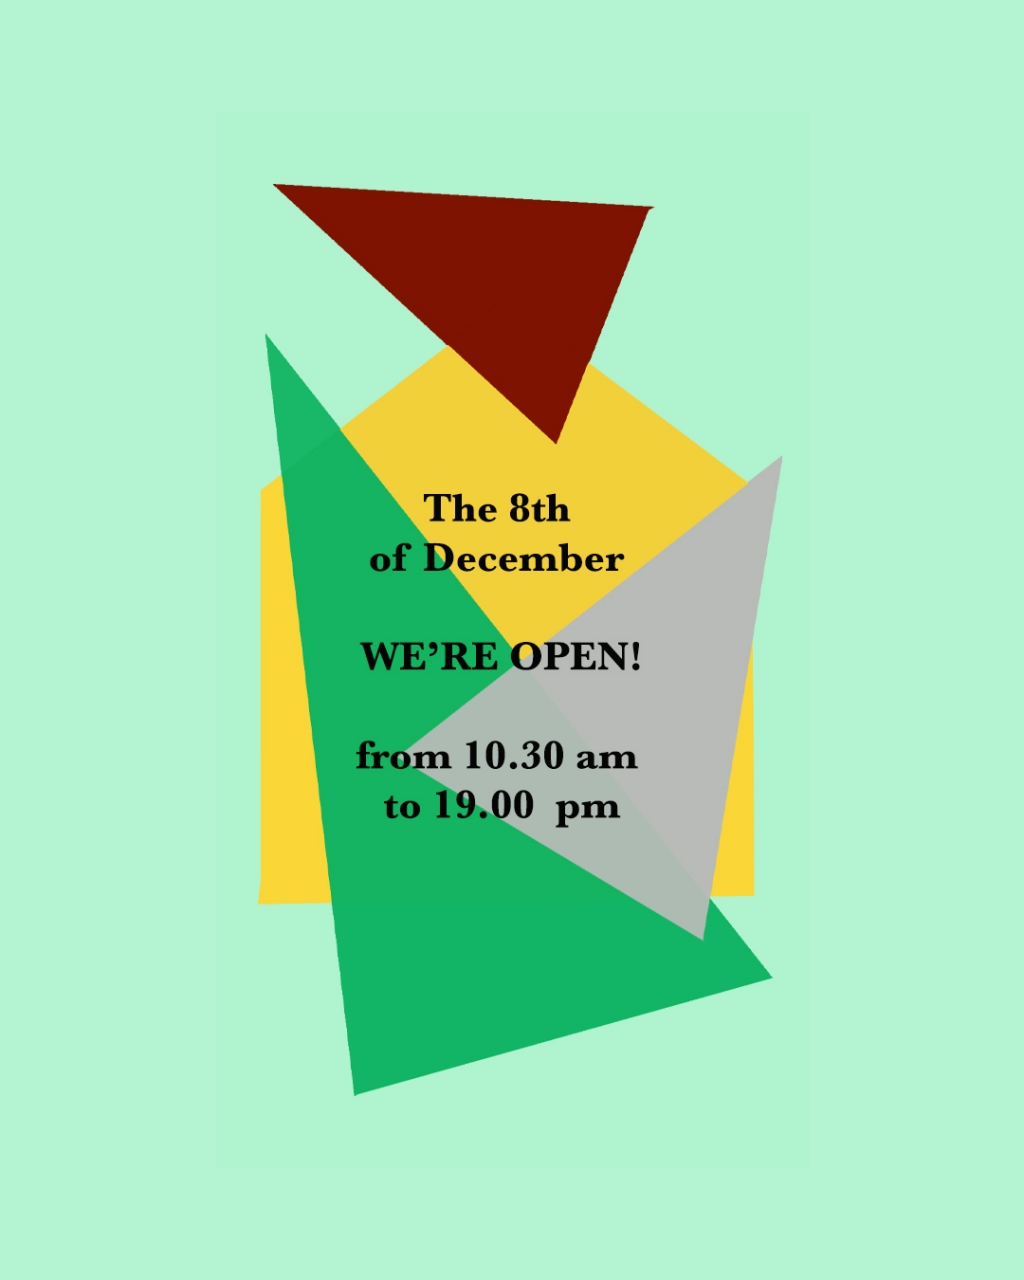 Today, the 8th of December we're open 'till 19.00!